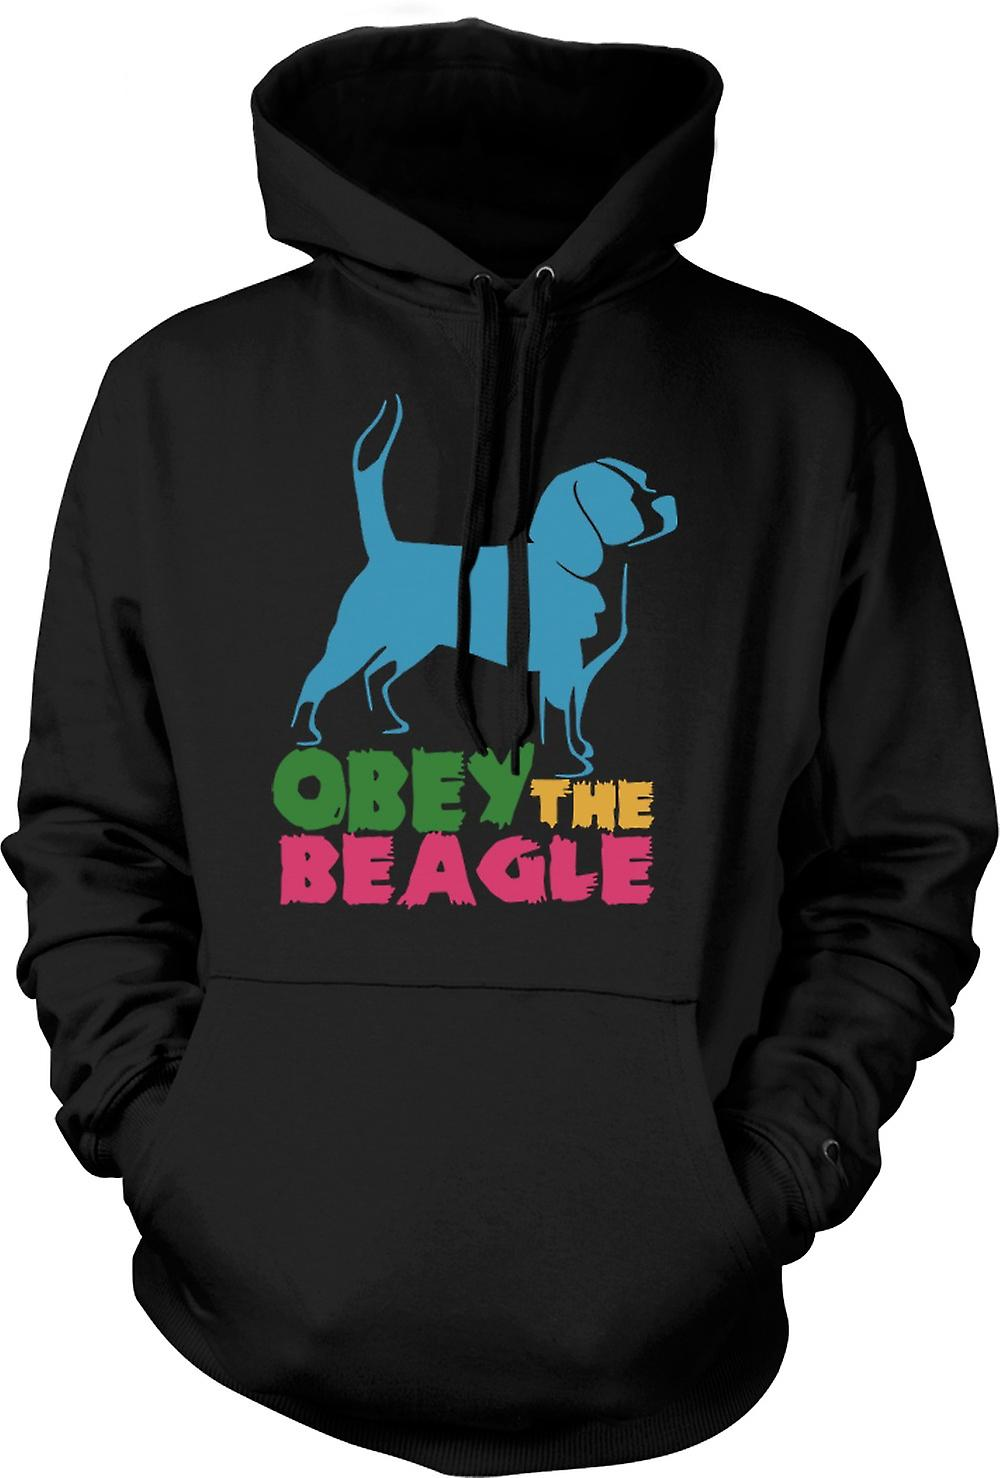 Kids Hoodie - Obey The Beagle